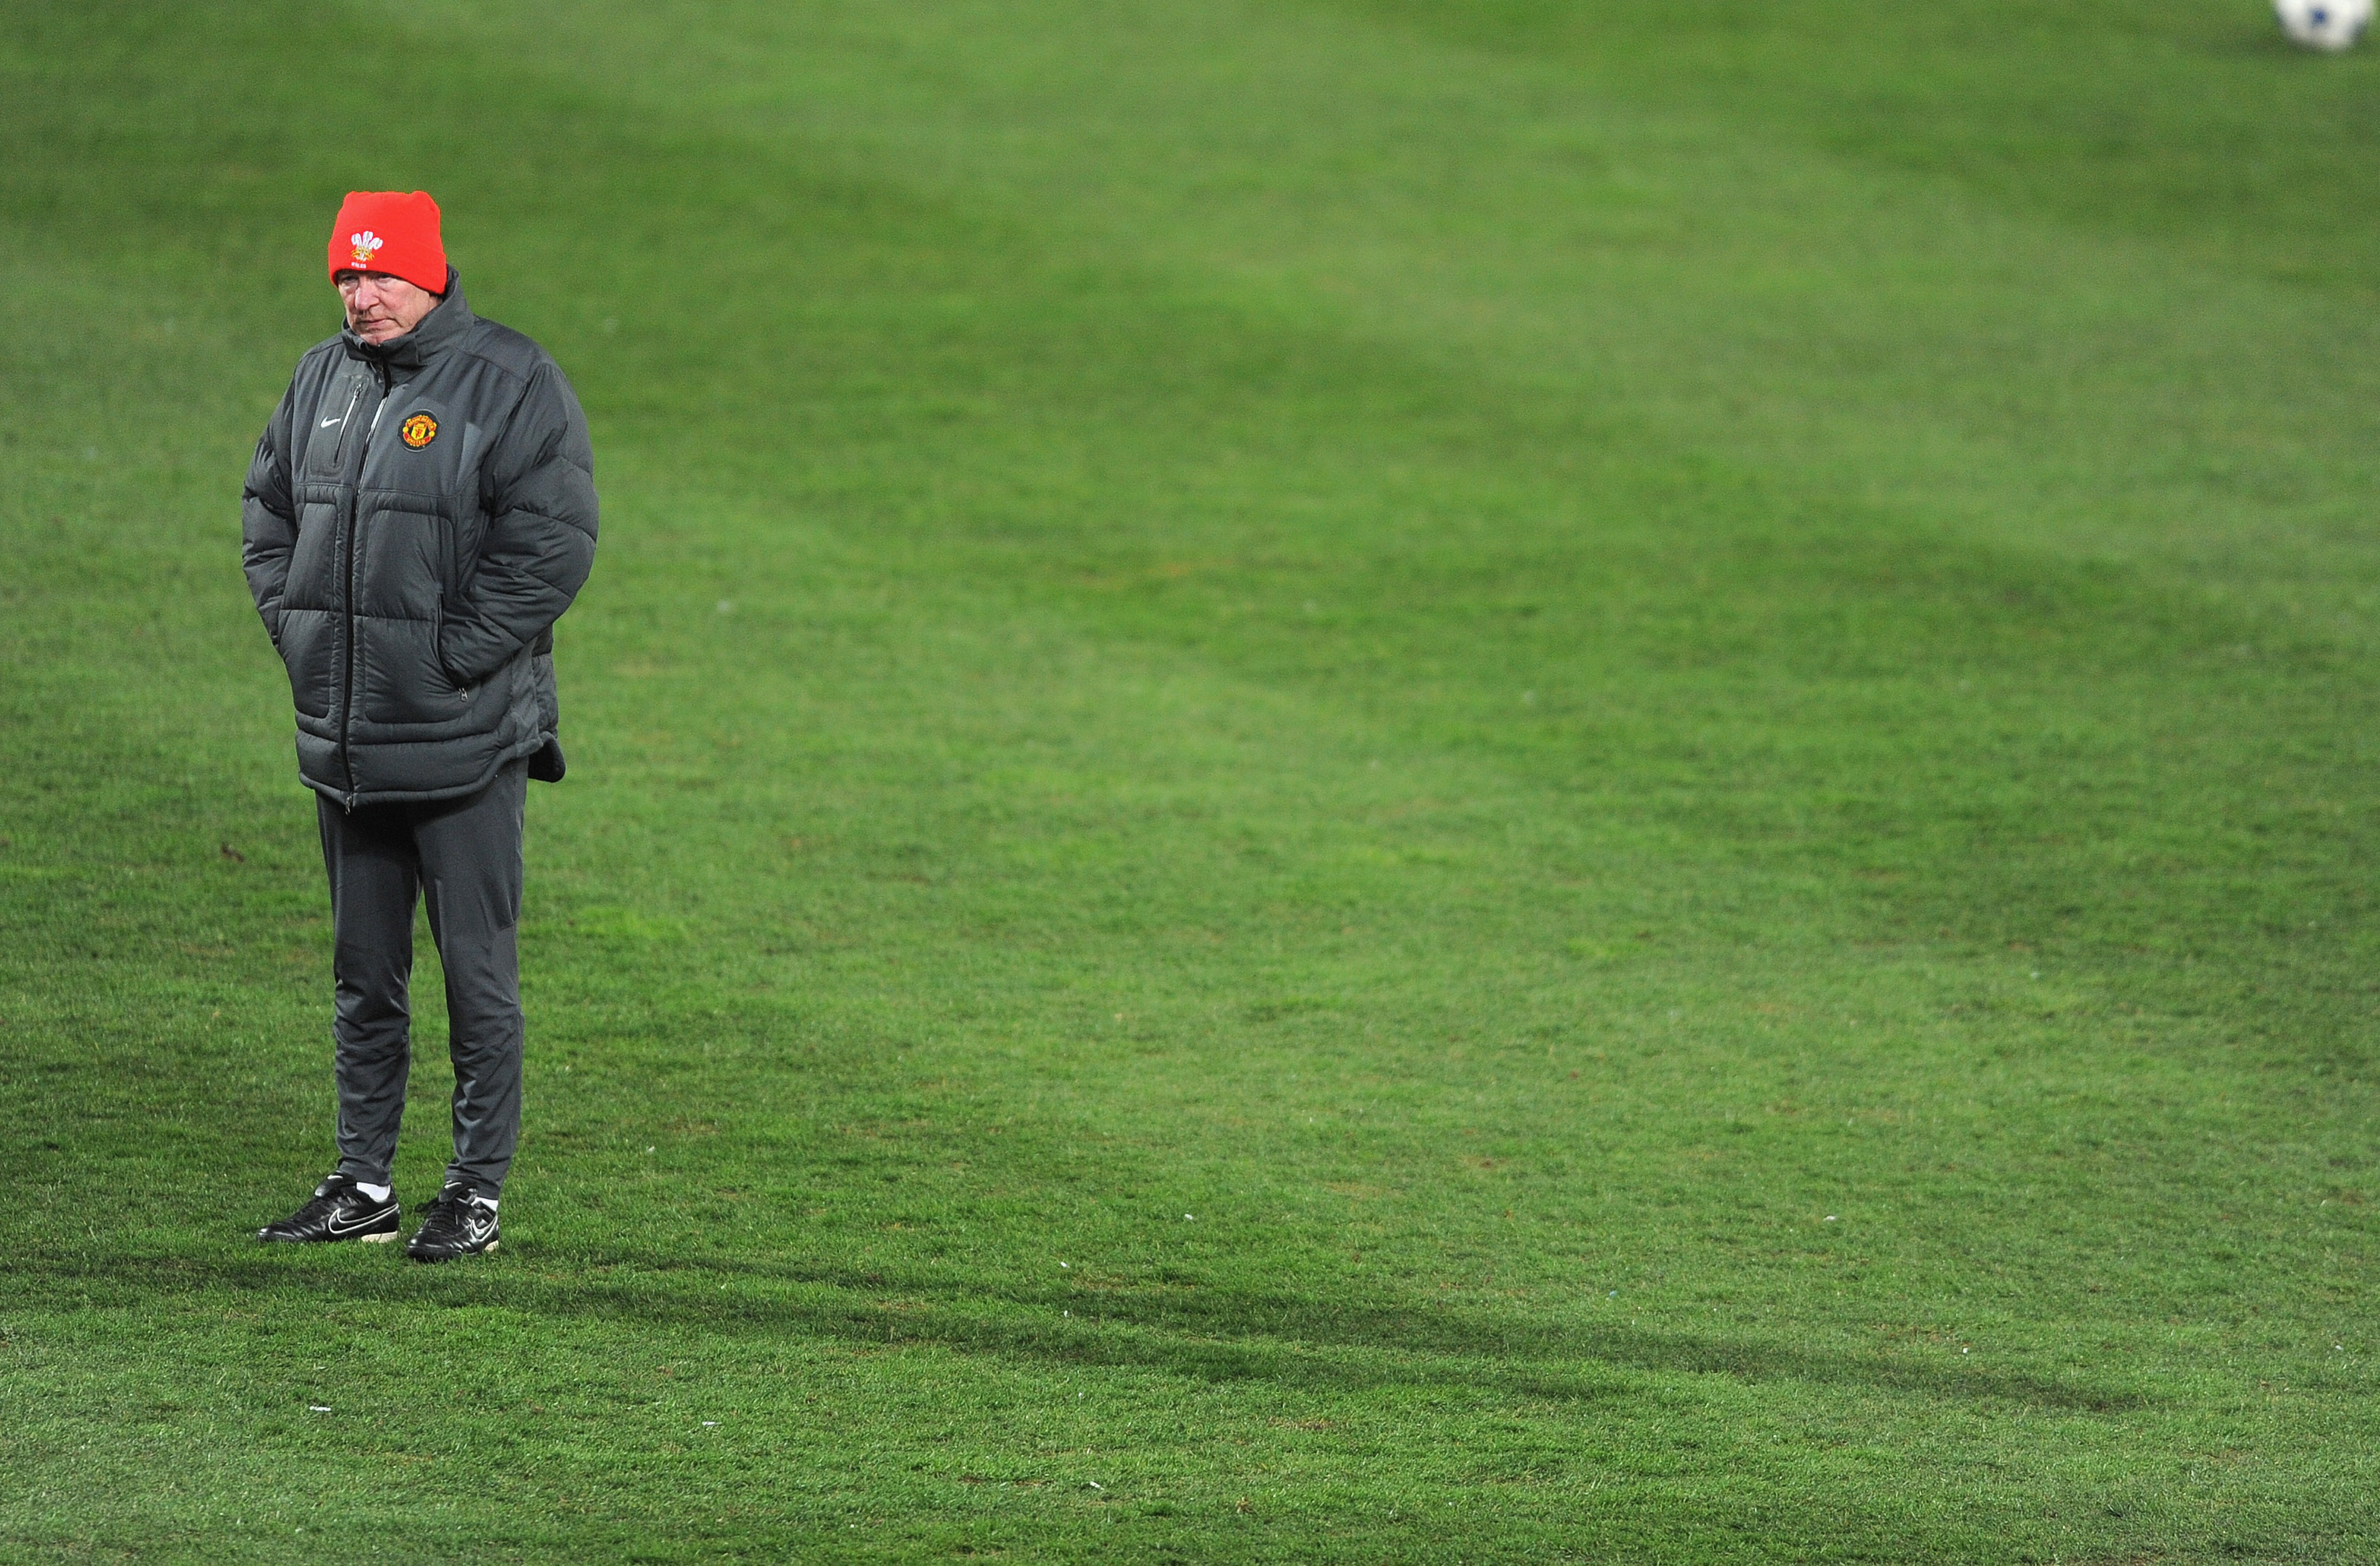 MARSEILLE, FRANCE - FEBRUARY 22:  Manchester United manager Sir Alex Ferguson looks on during the Manchester United training session ahead of the UEFA Champions League round of 16 first leg match against Marseille at the Stade Velodrome on February 22, 20